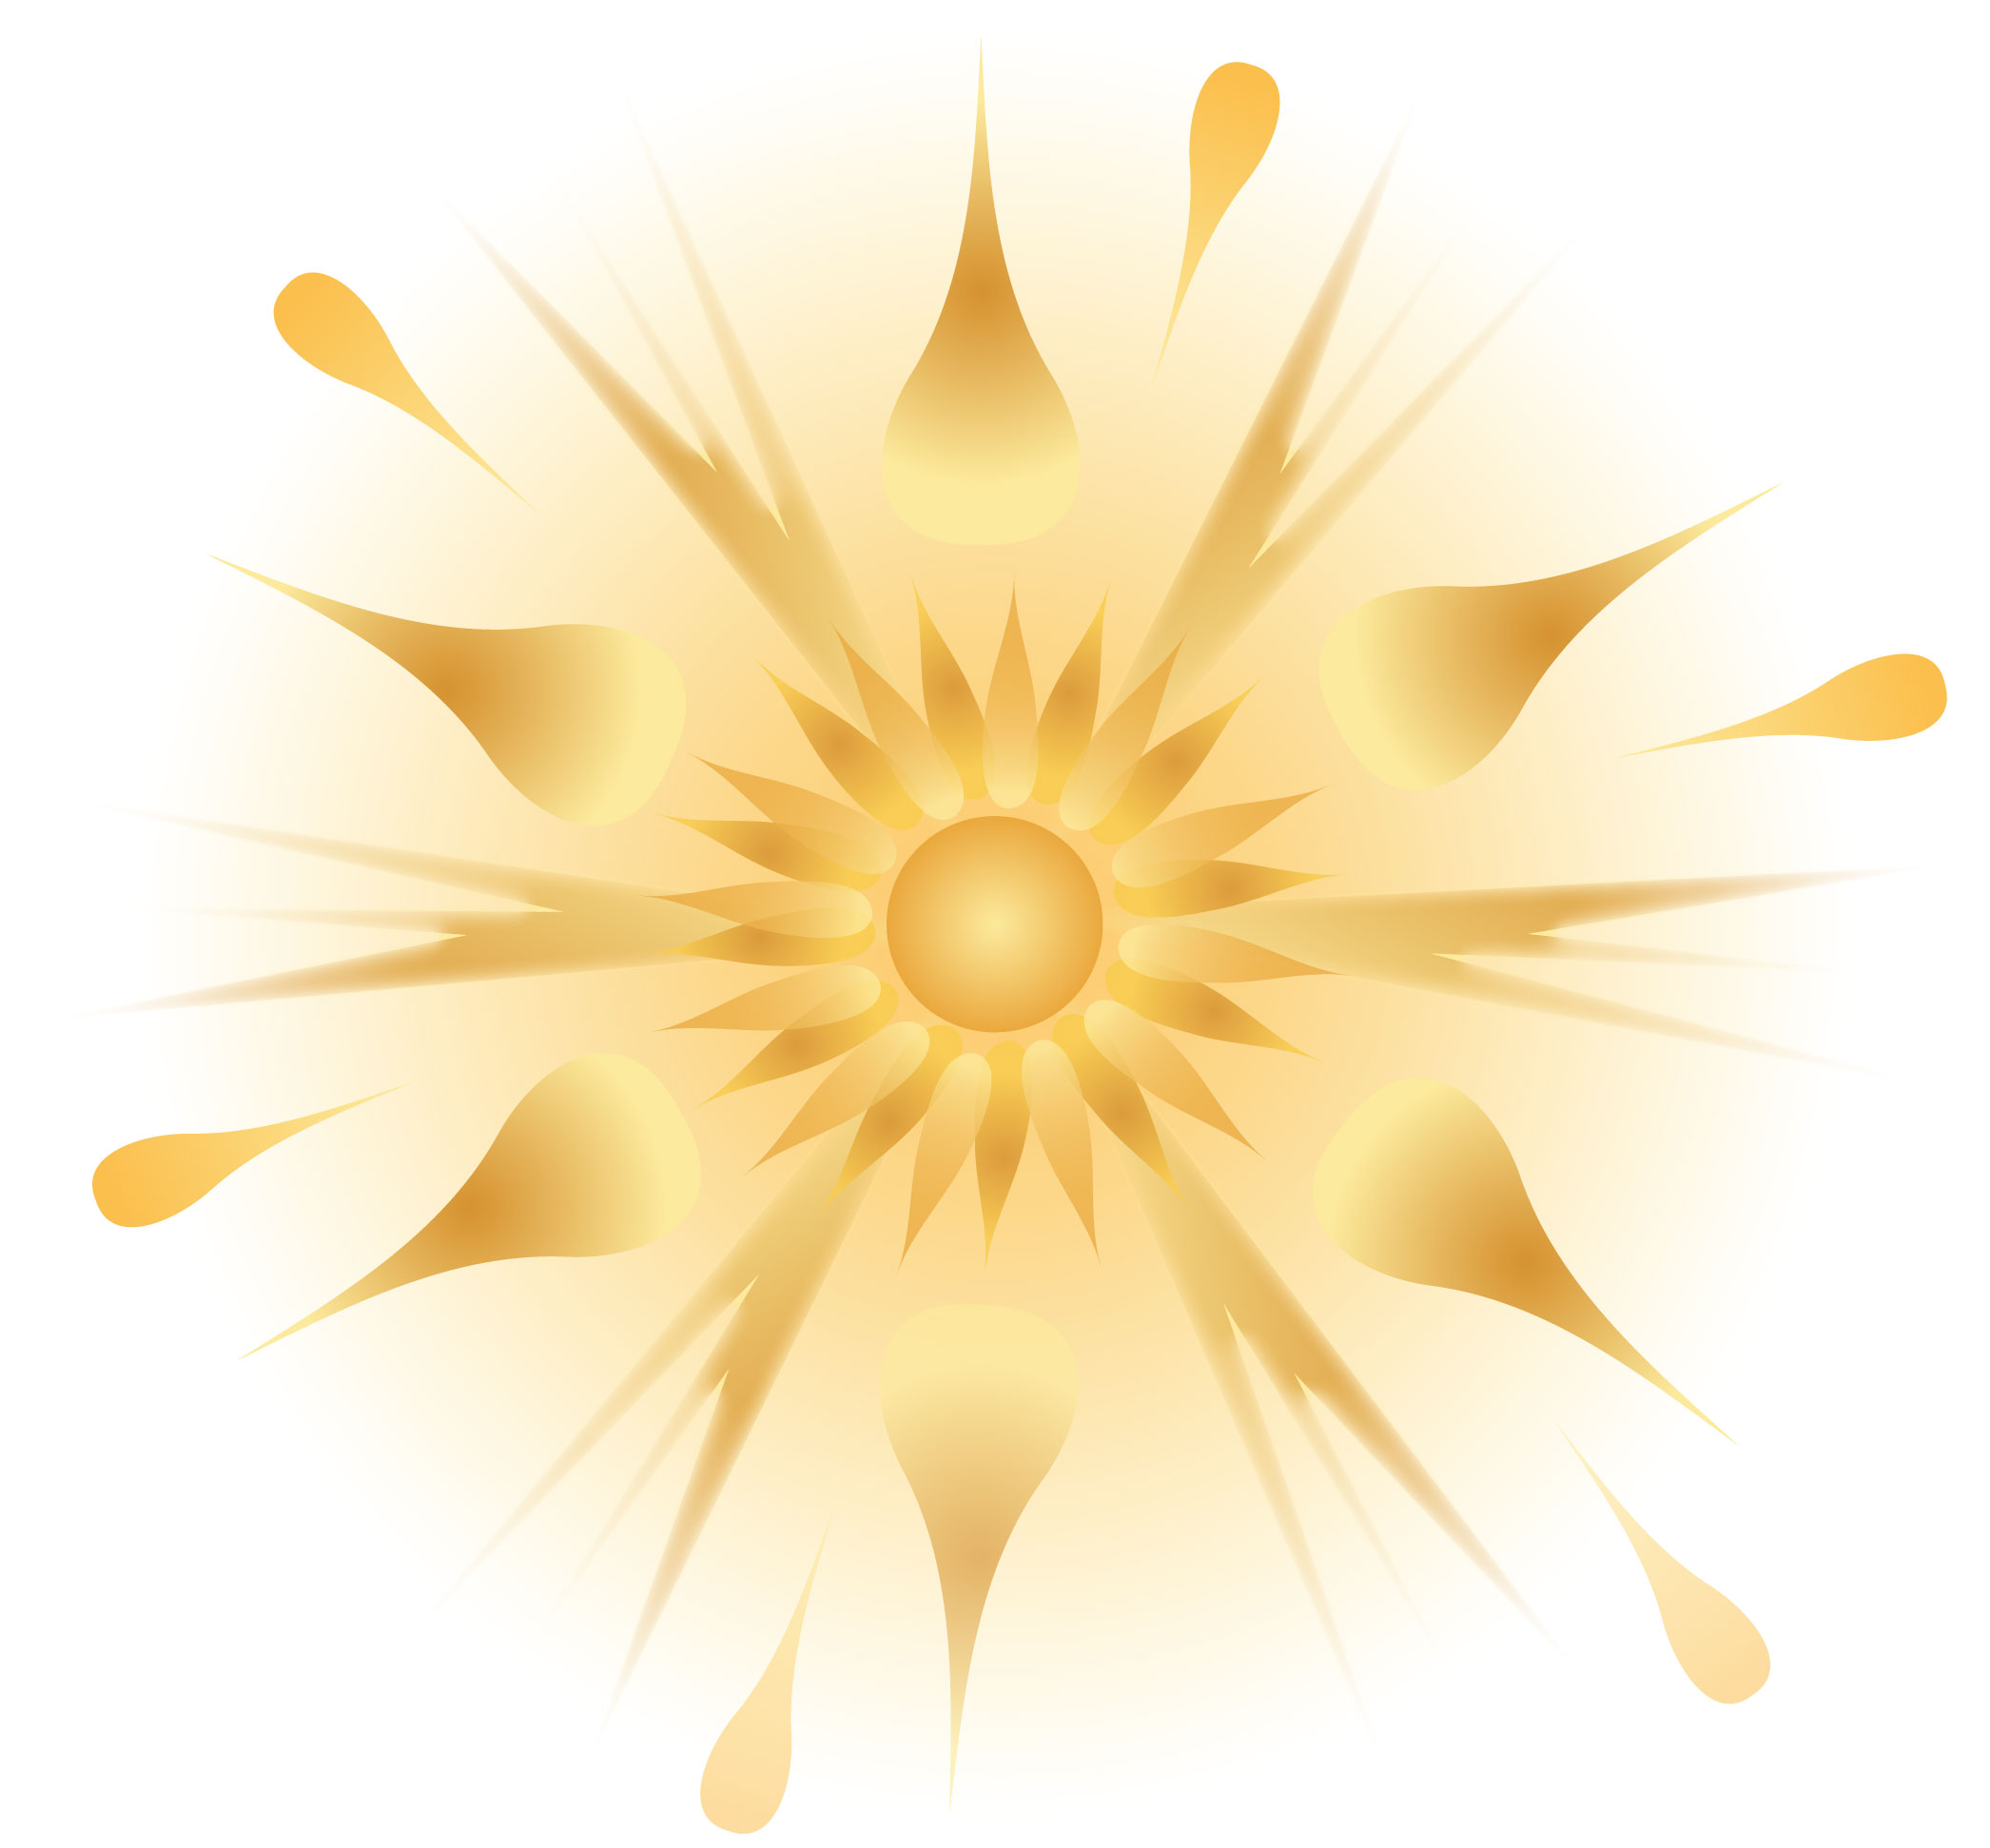 They make great gifts! - A Soul-Up Astrology Session is a great gift for a loved one who is looking for greater clarity around their purpose in this life.